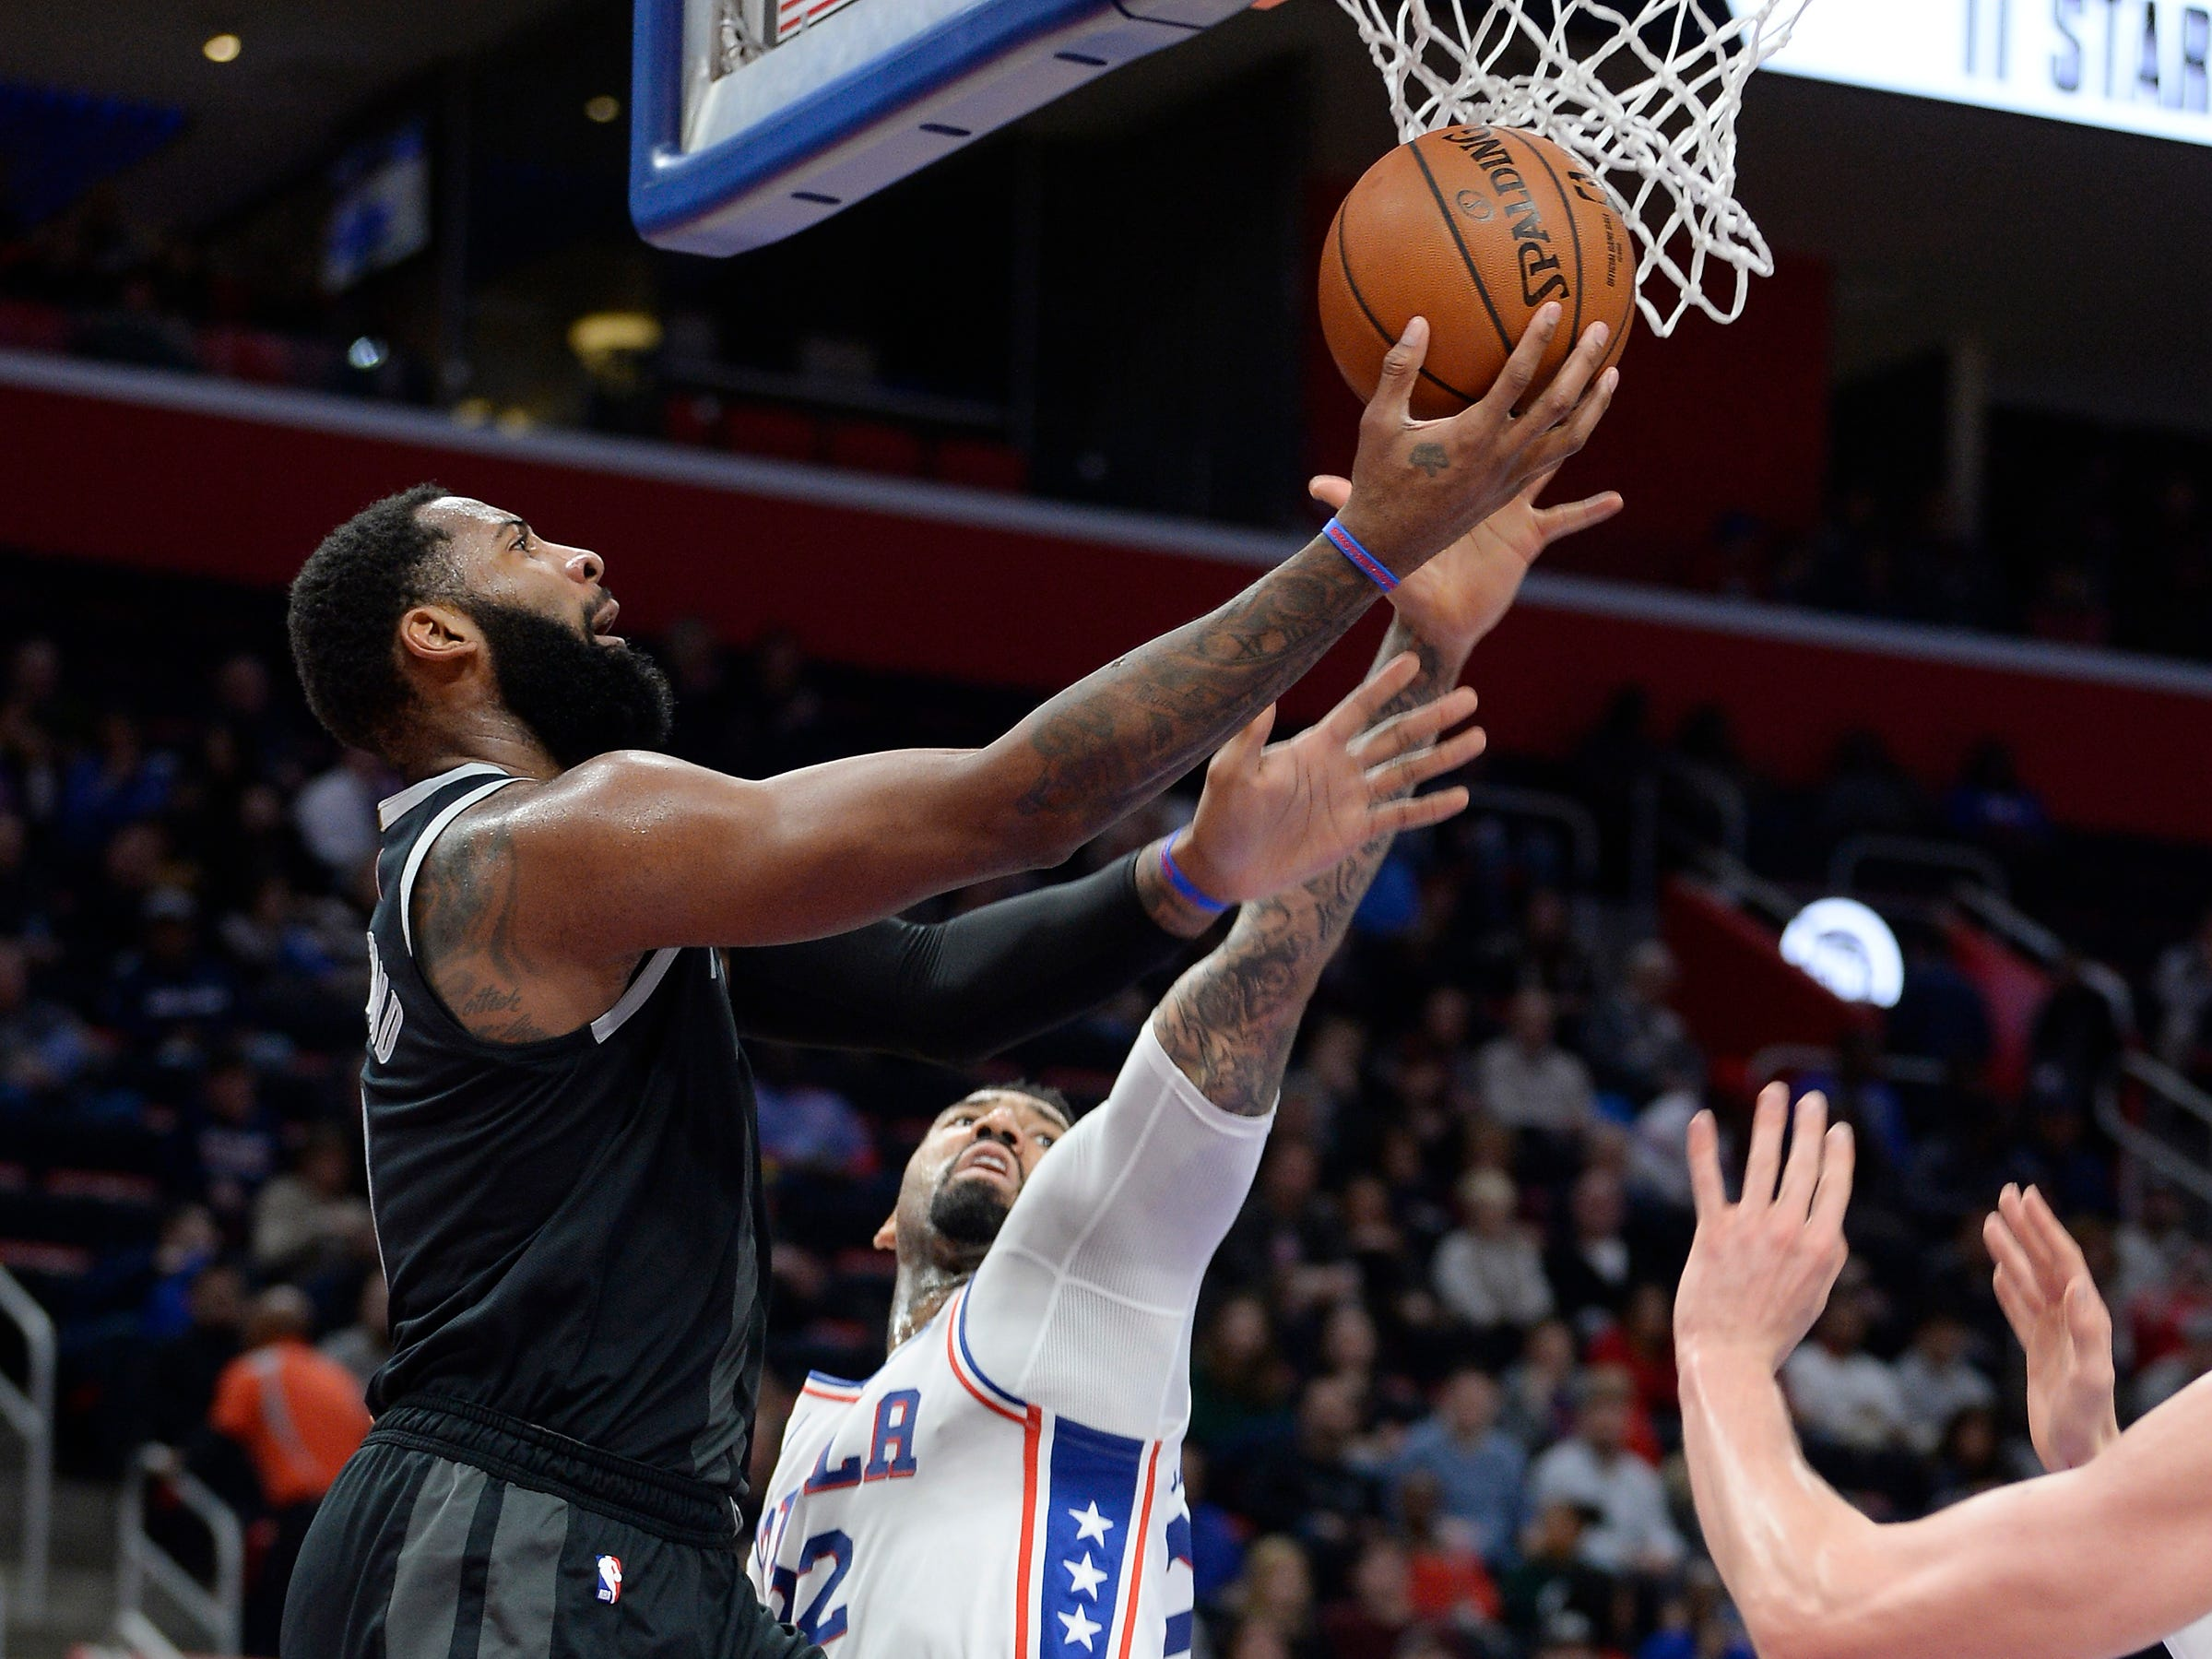 Pistons' Andre Drummond scores over 76ers' Wilson Chandler in the second quarter.